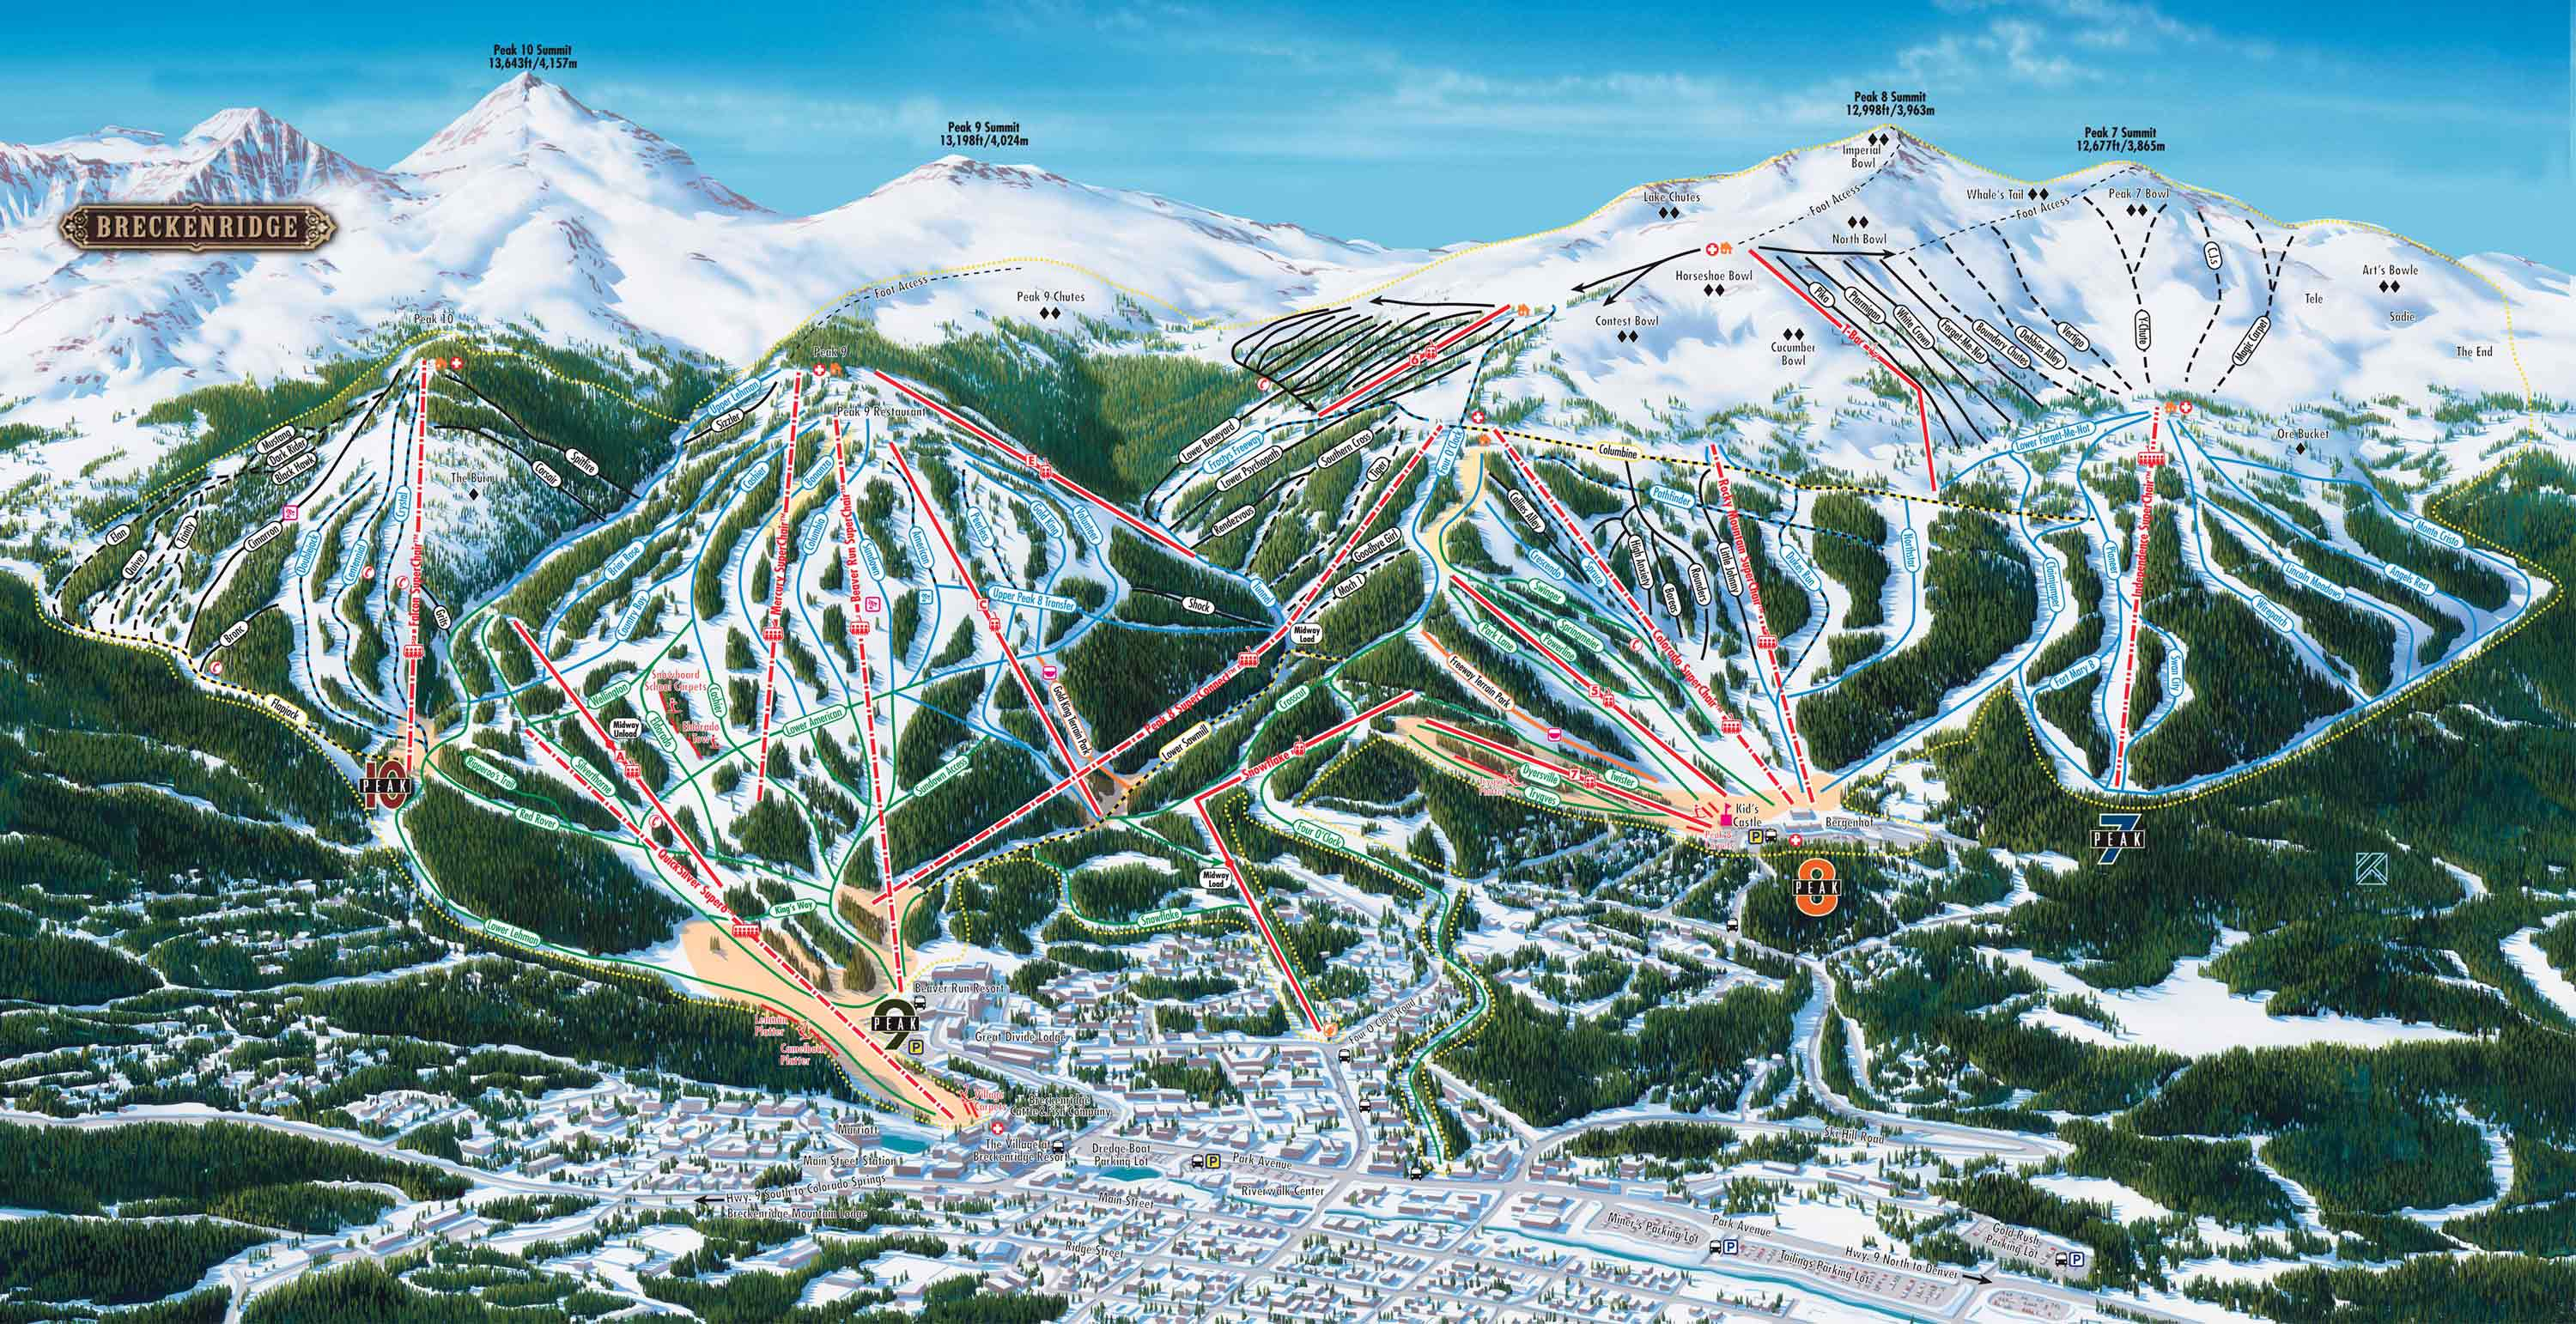 Breckenridge Piste / Trail Map